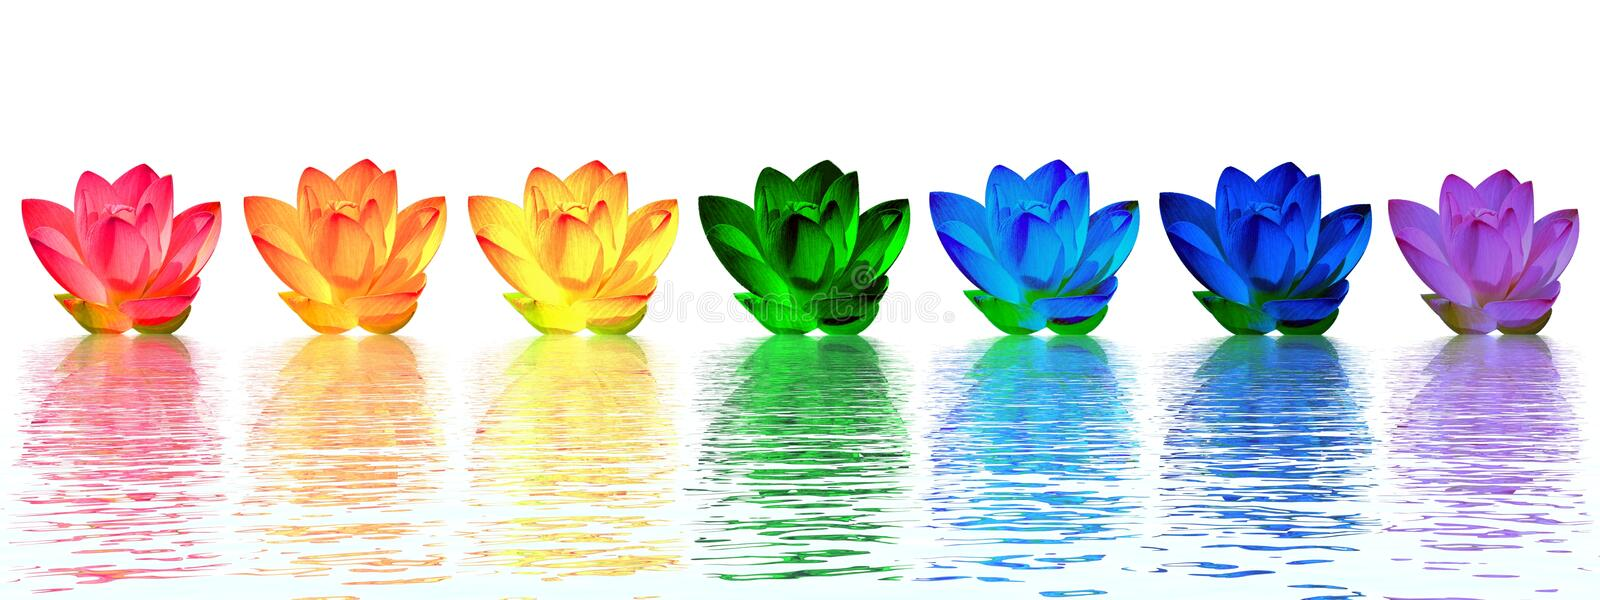 Download Lily flowers chakras stock illustration. Image of peace - 22098848